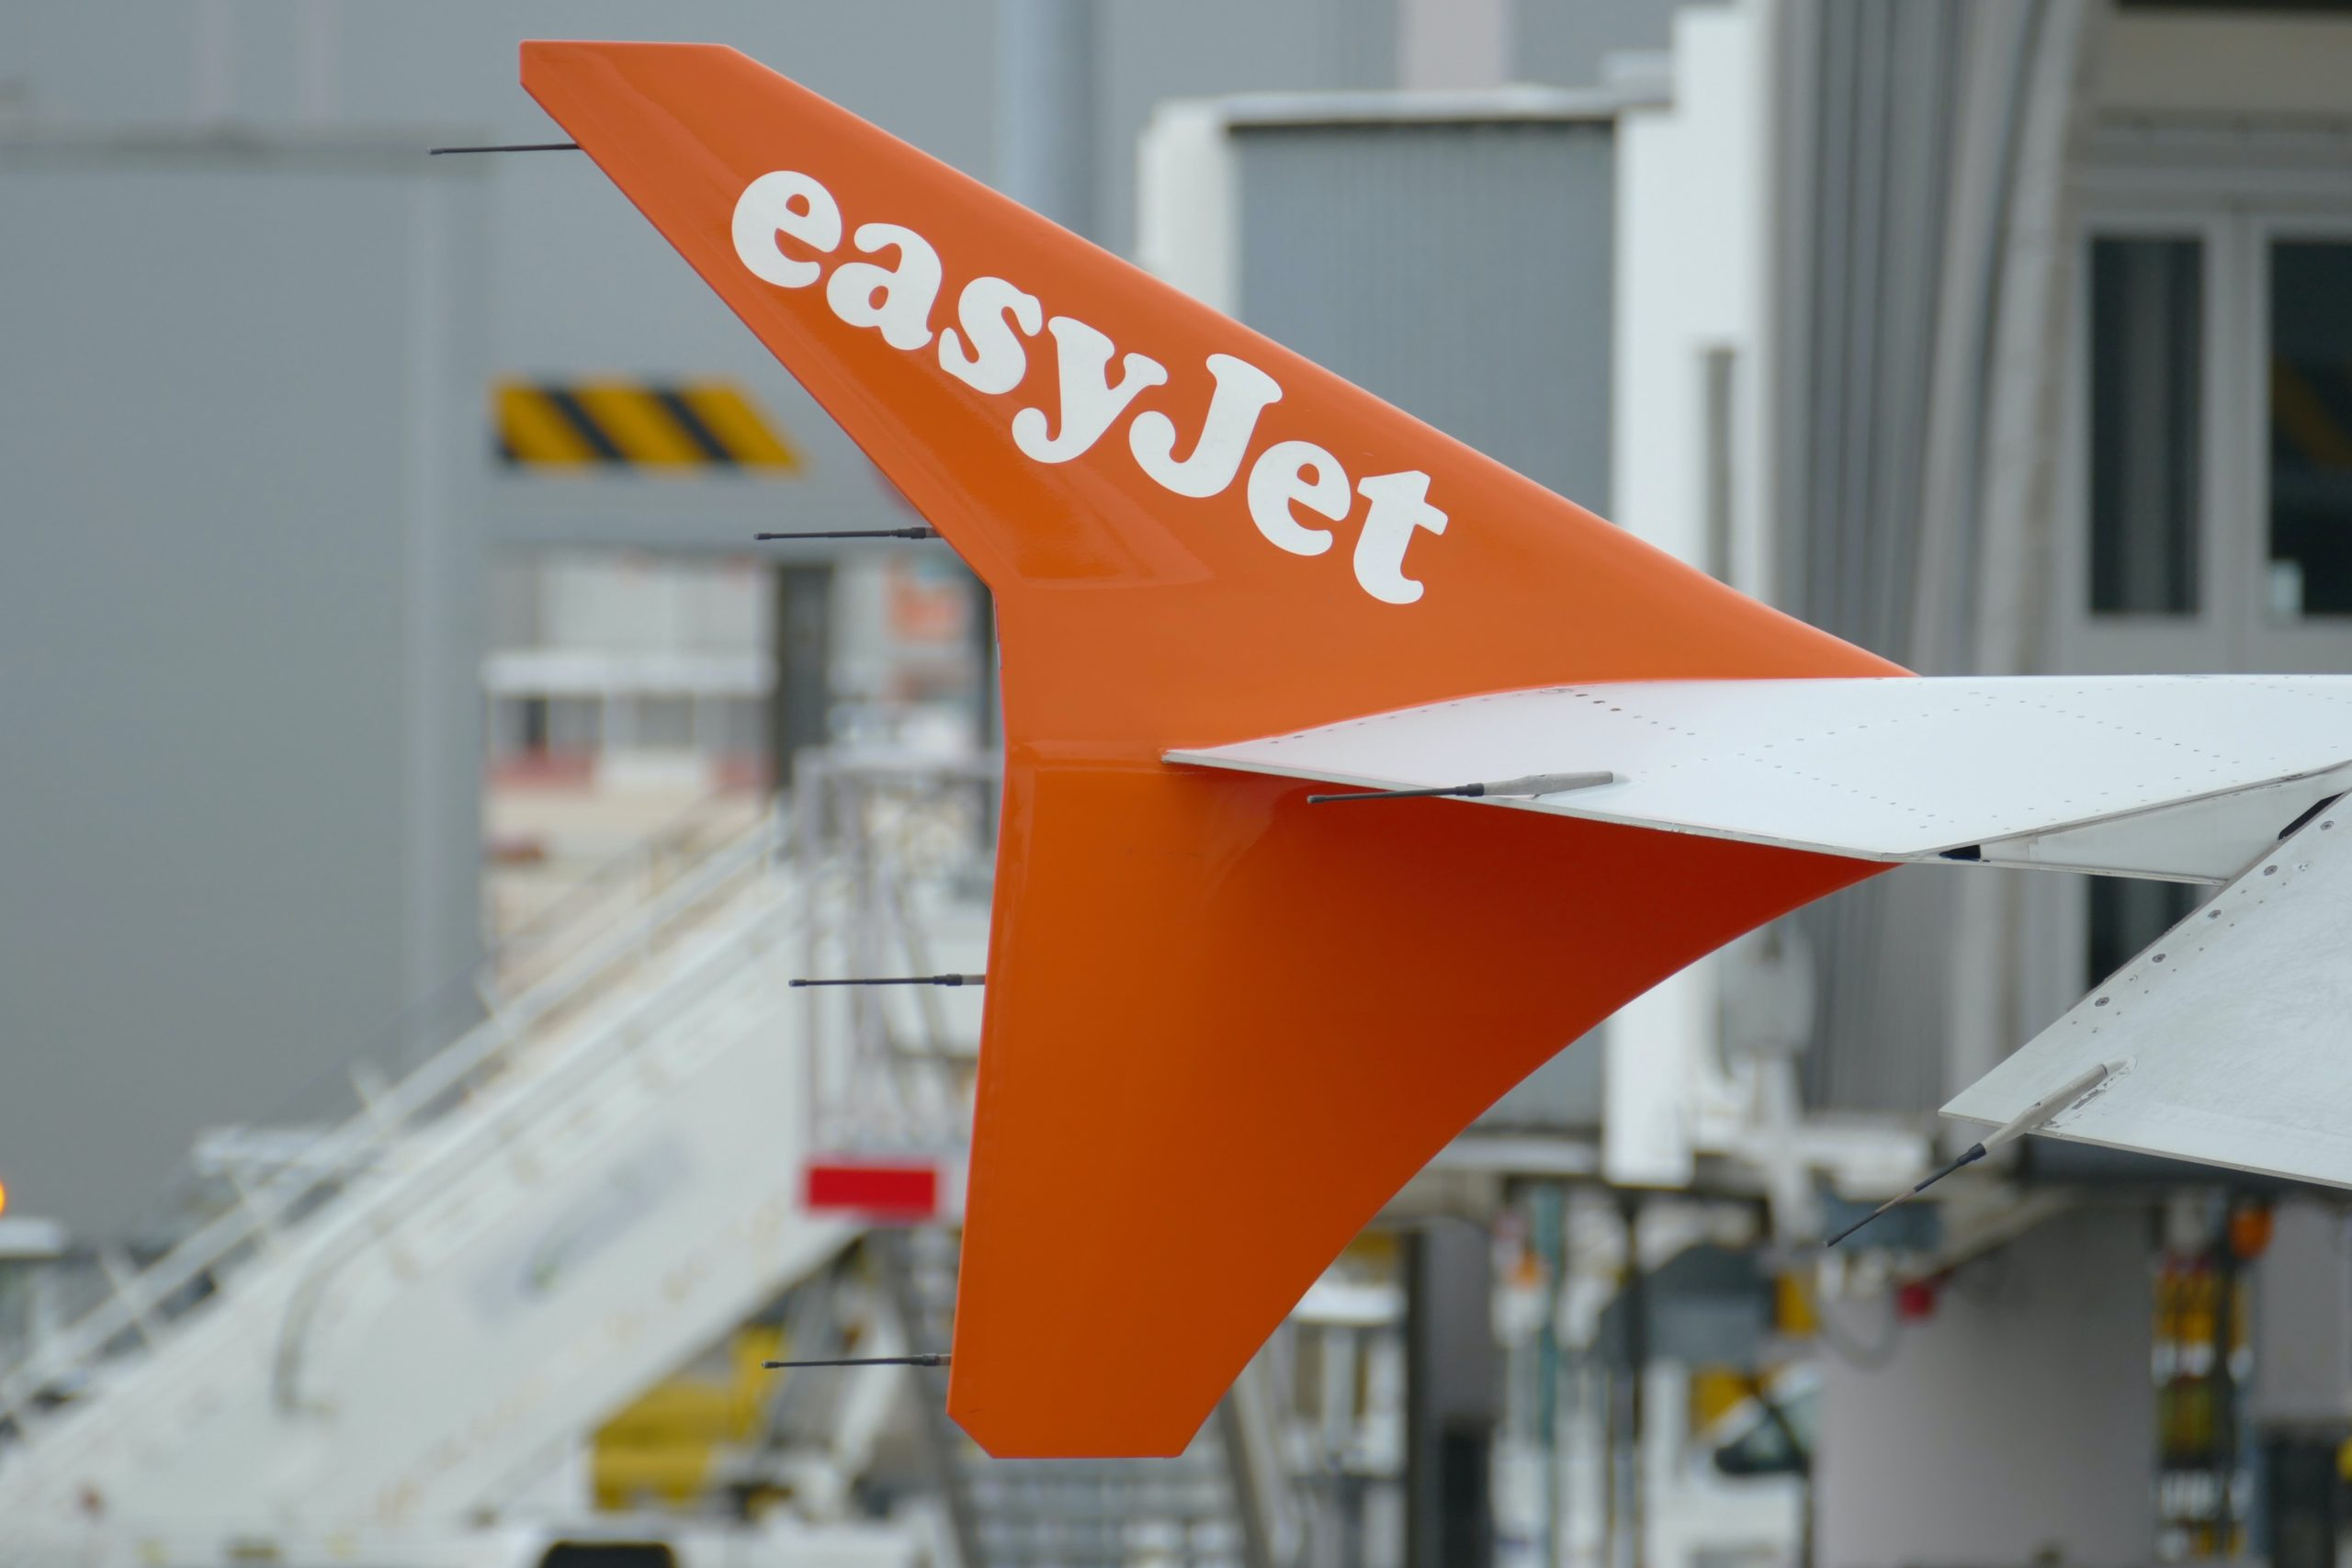 £18 billion class-action lawsuit filed against EasyJet after data breach